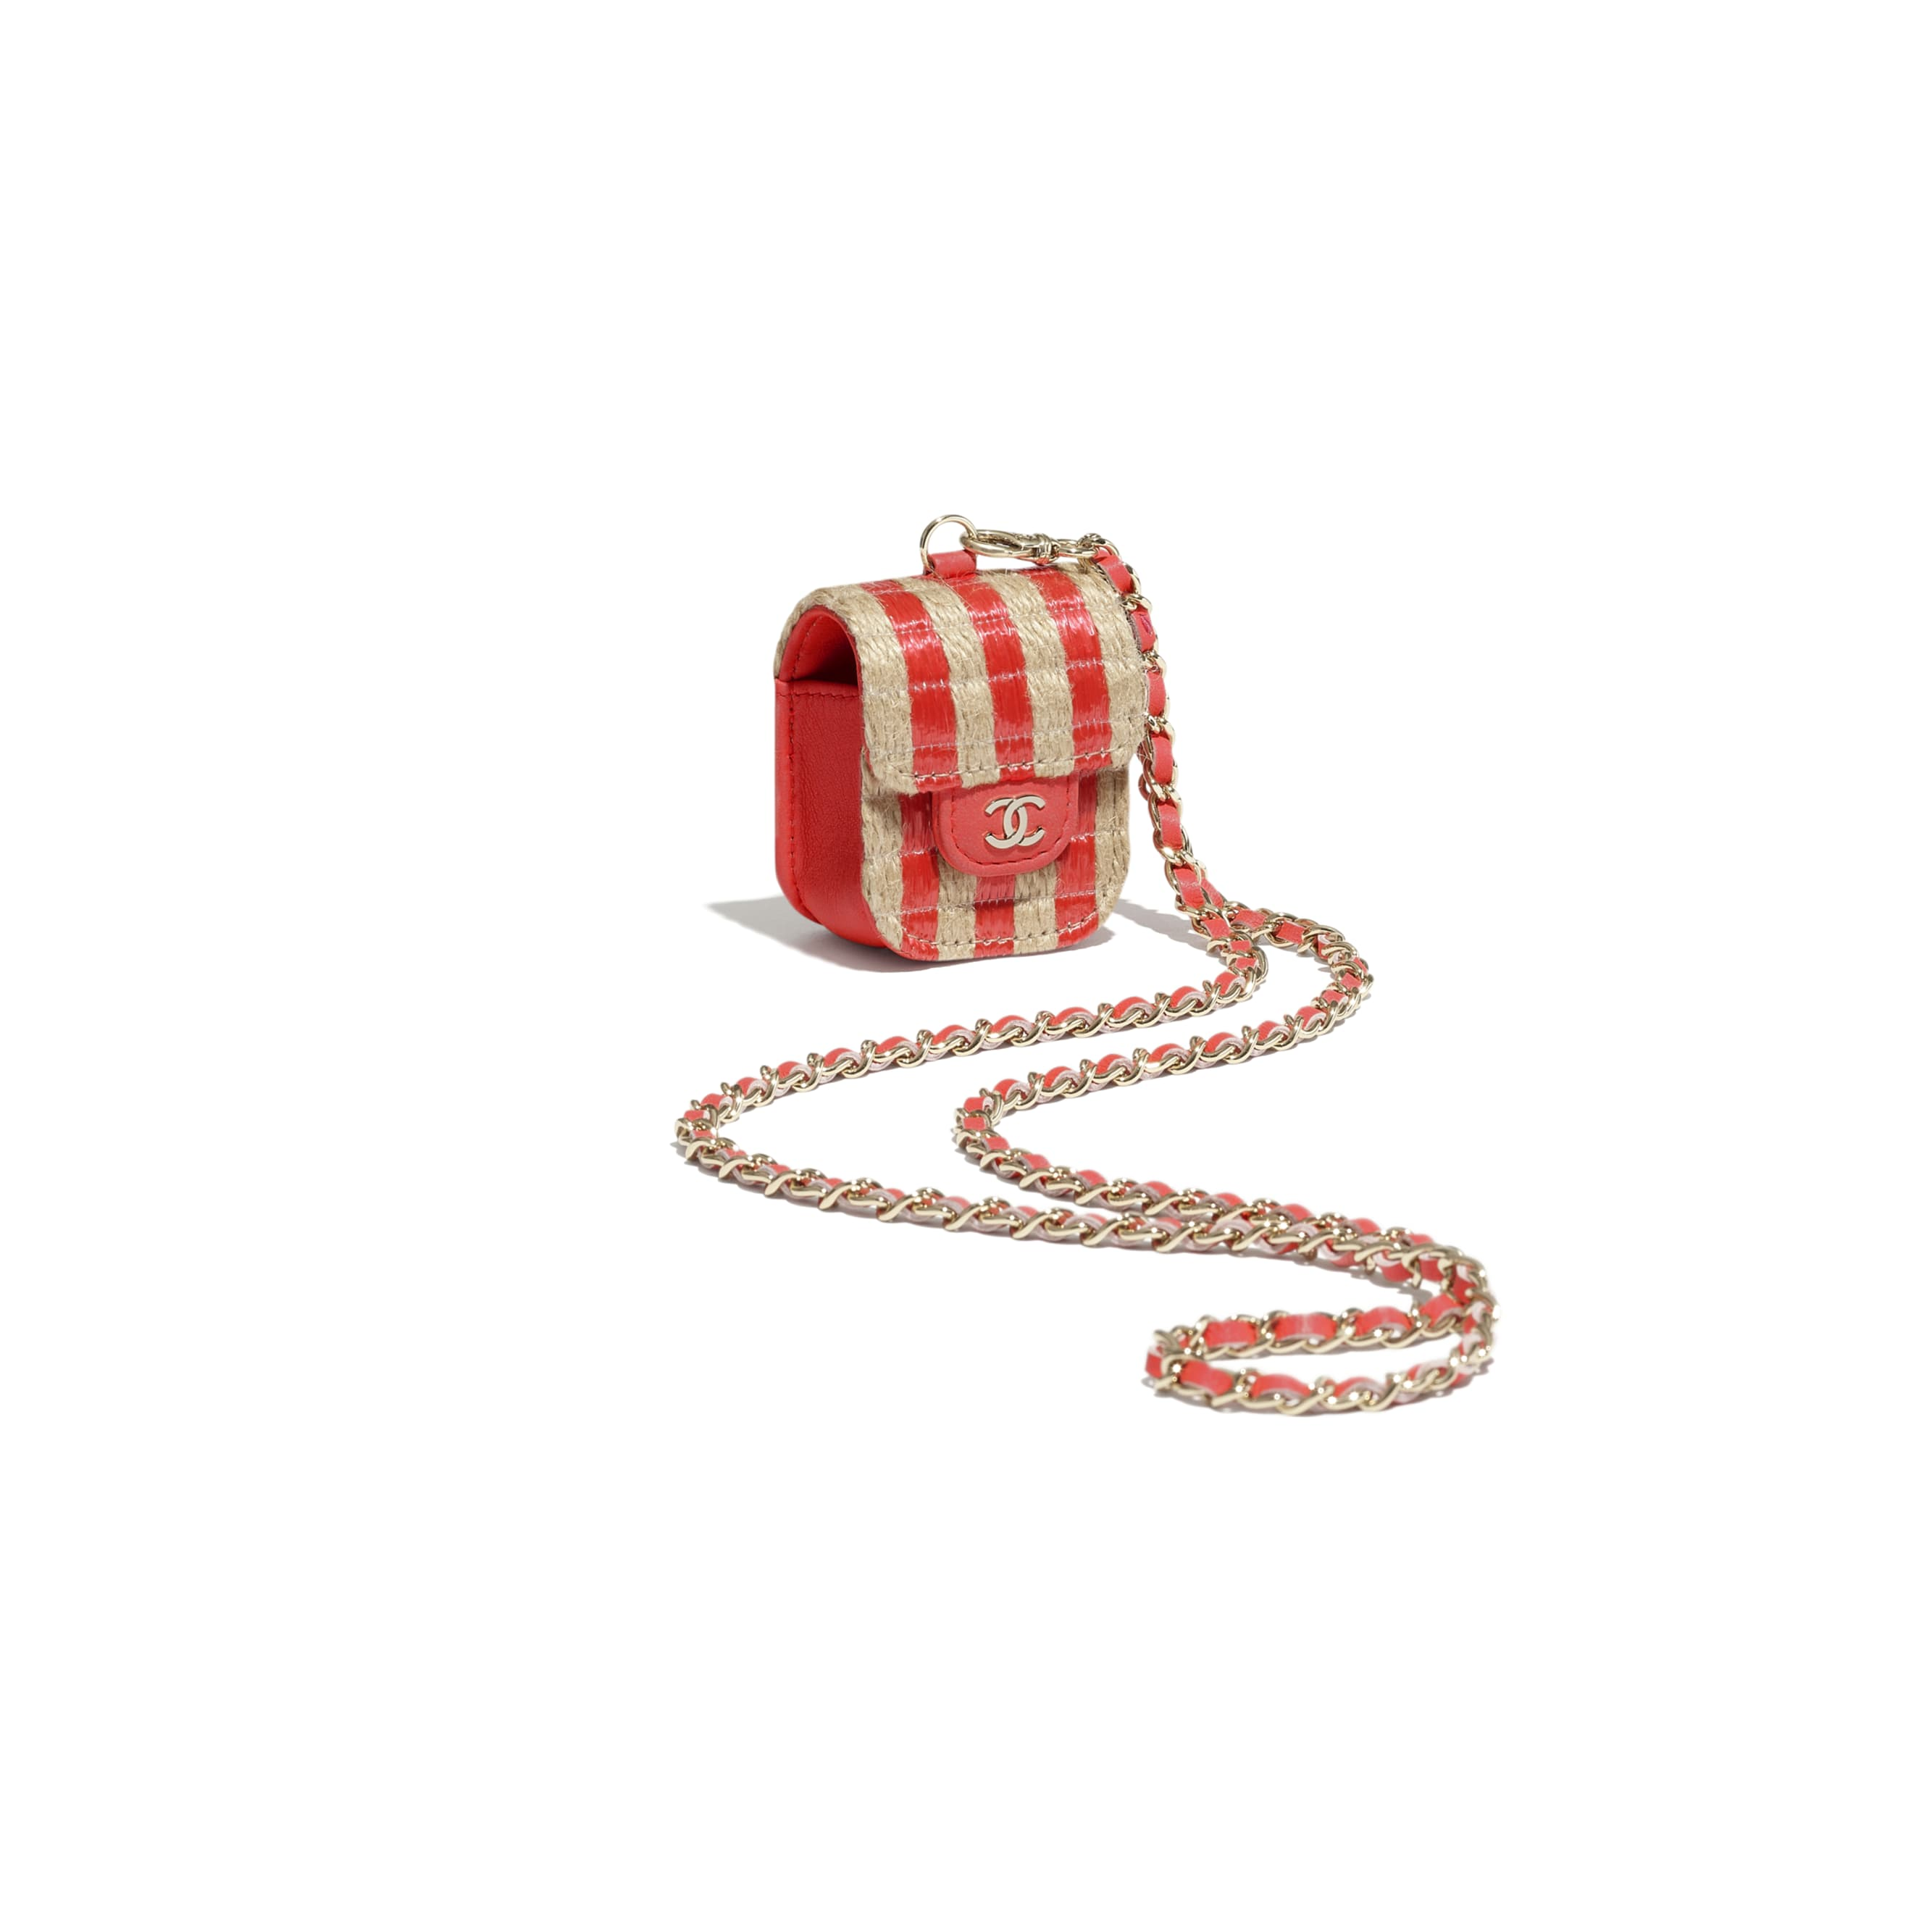 AirPods Case - Red & Beige - Raffia, Jute Thread & Gold-Tone Metal - CHANEL - Other view - see standard sized version